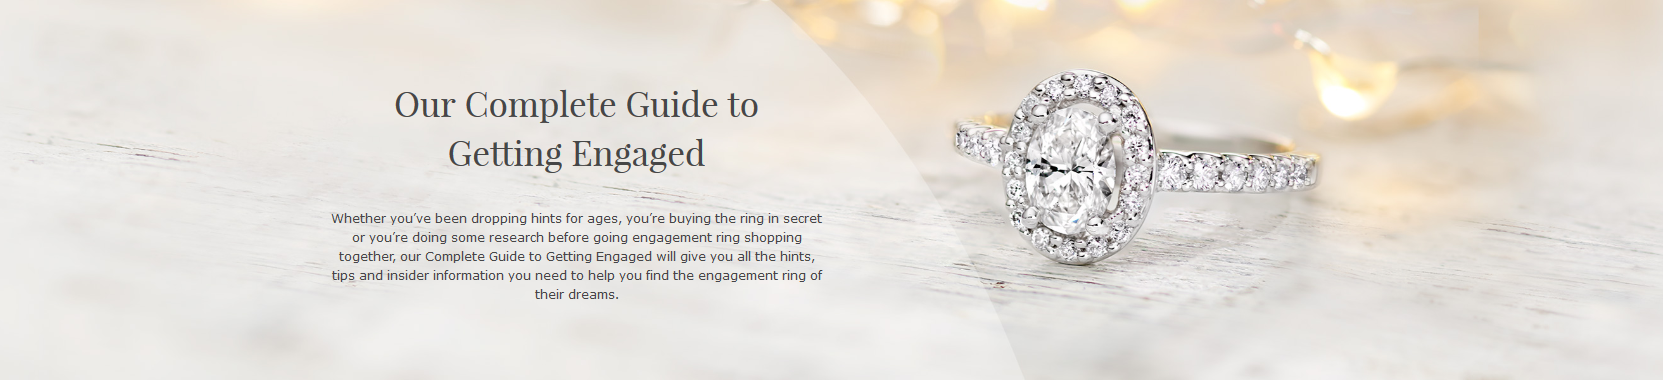 Screenshot-2018-2-3 Getting Engaged An Ultimate Guide from Beaverbrooks Beaverbrooks the Jewellers.png